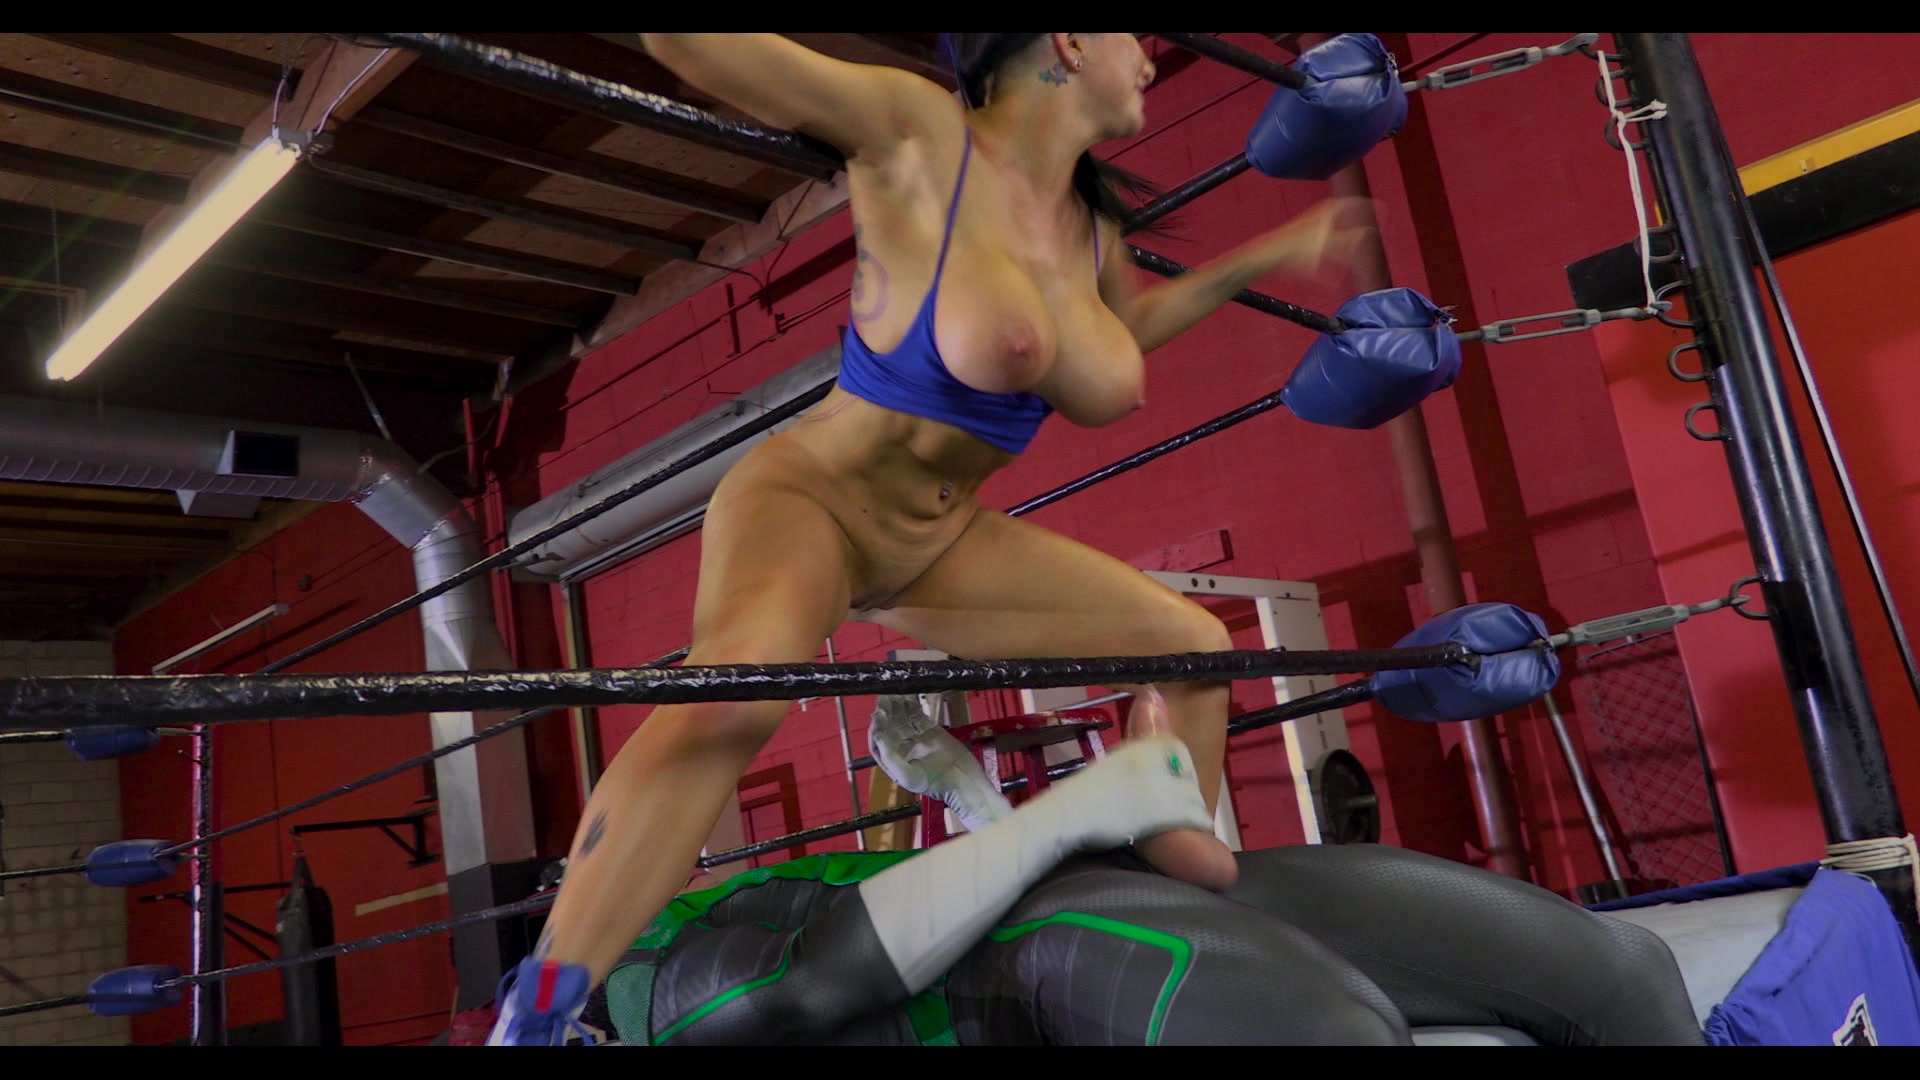 Scene with Xander Corvus and Romi Rain - image 17 out of 20